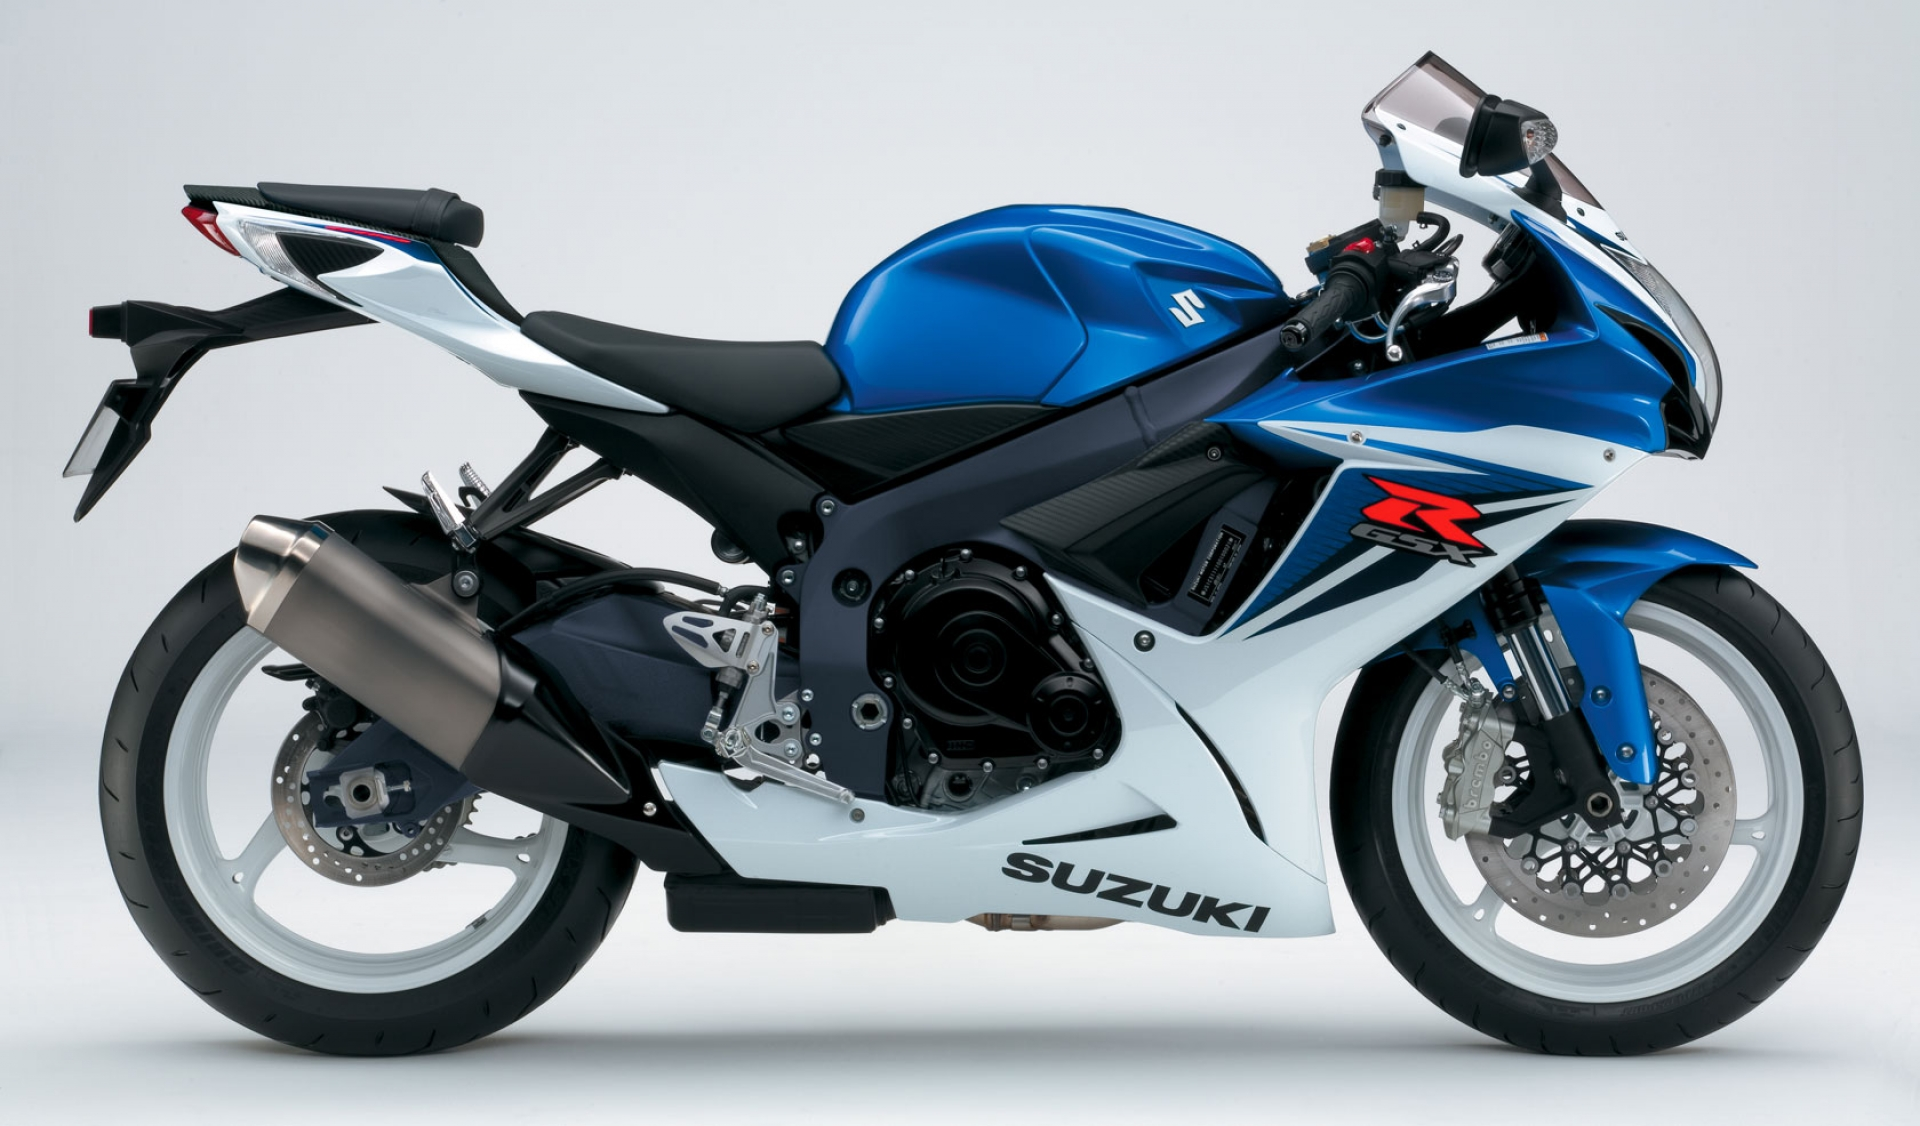 suzuki gsx r 600 fiche technique avis et prix la poign e dans l 39 angle. Black Bedroom Furniture Sets. Home Design Ideas